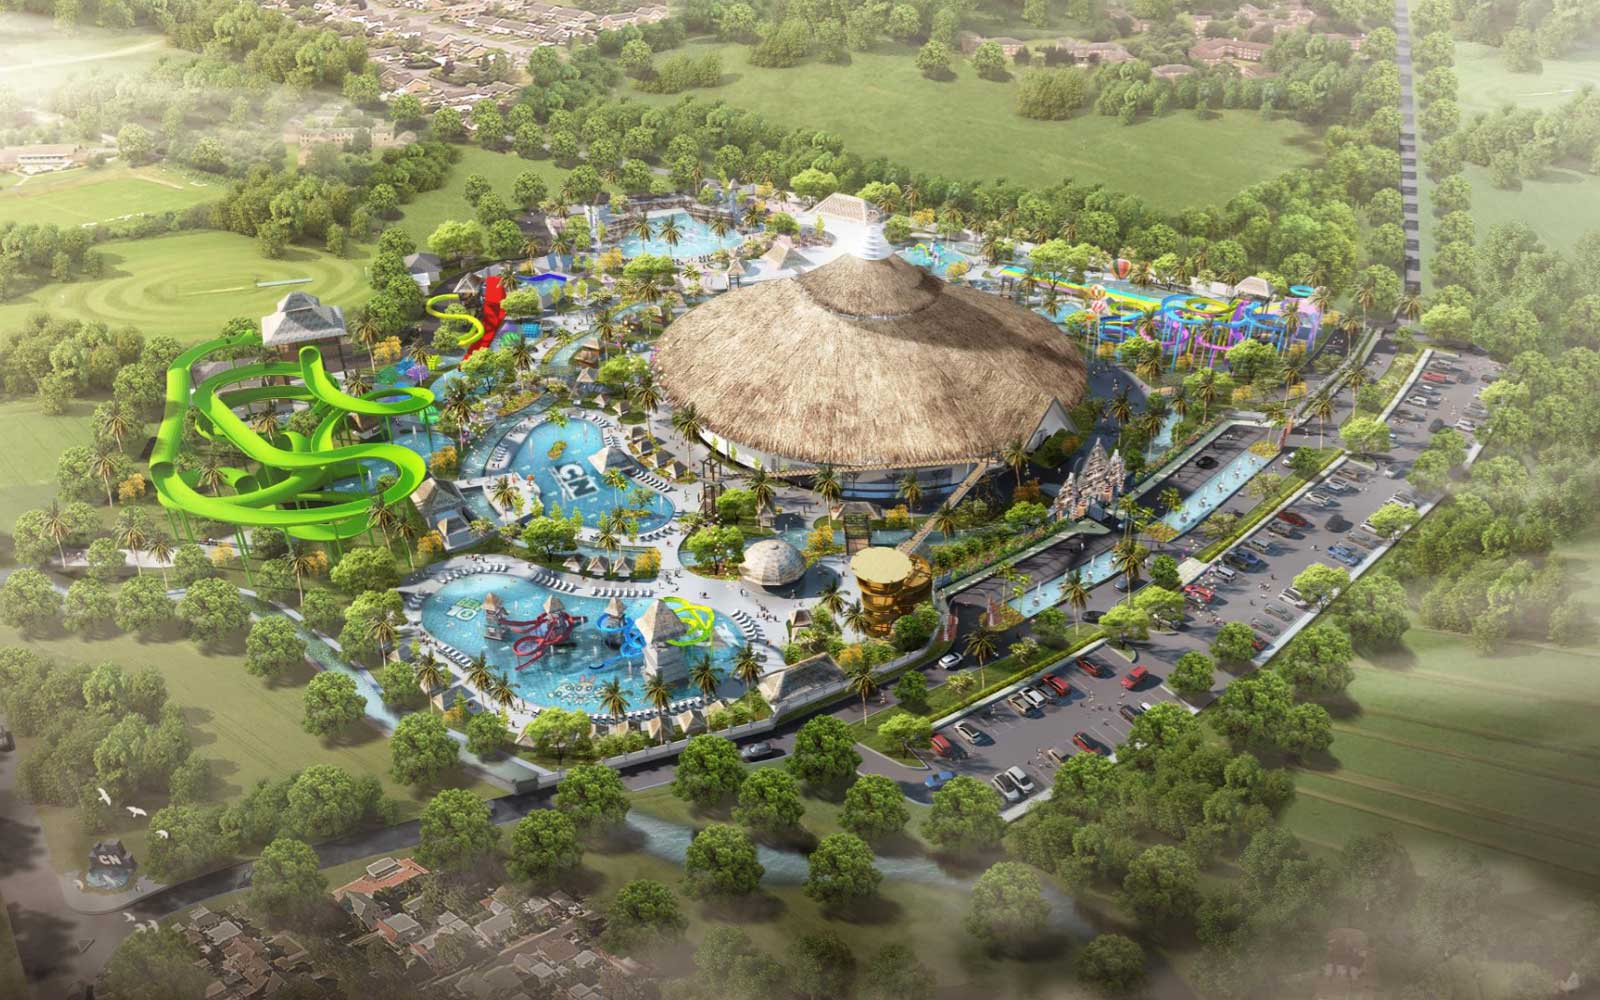 A Cartoon Network Theme Park Is Coming to Bali and Adults Are Invited, Too